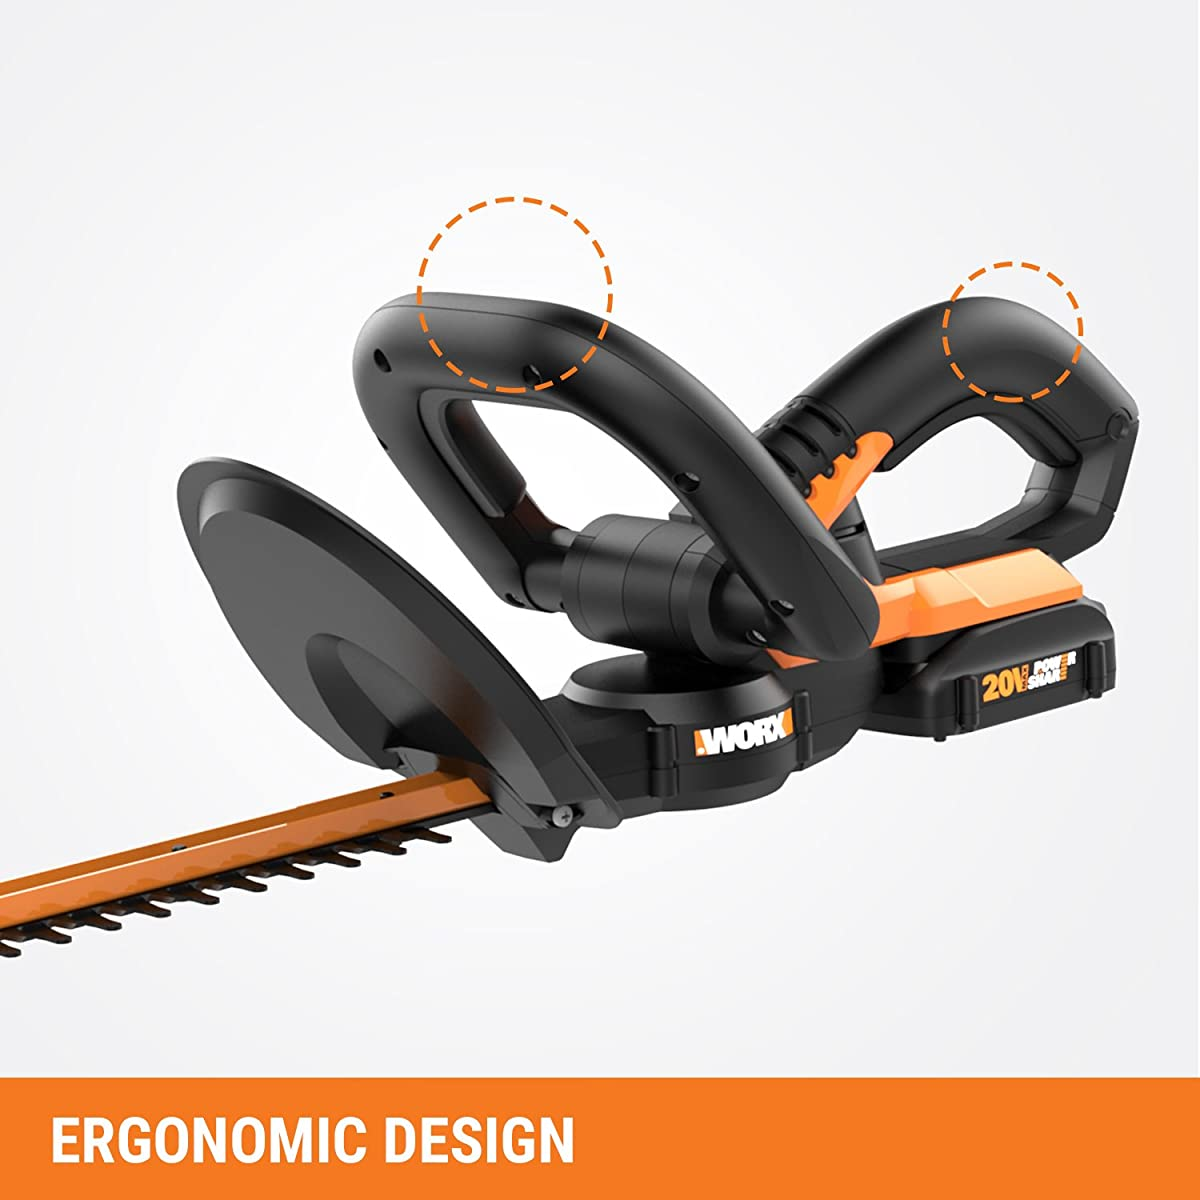 "Worx WG255.1 20V PowerShare 20"" Cordless Electric Hedge Trimmer"